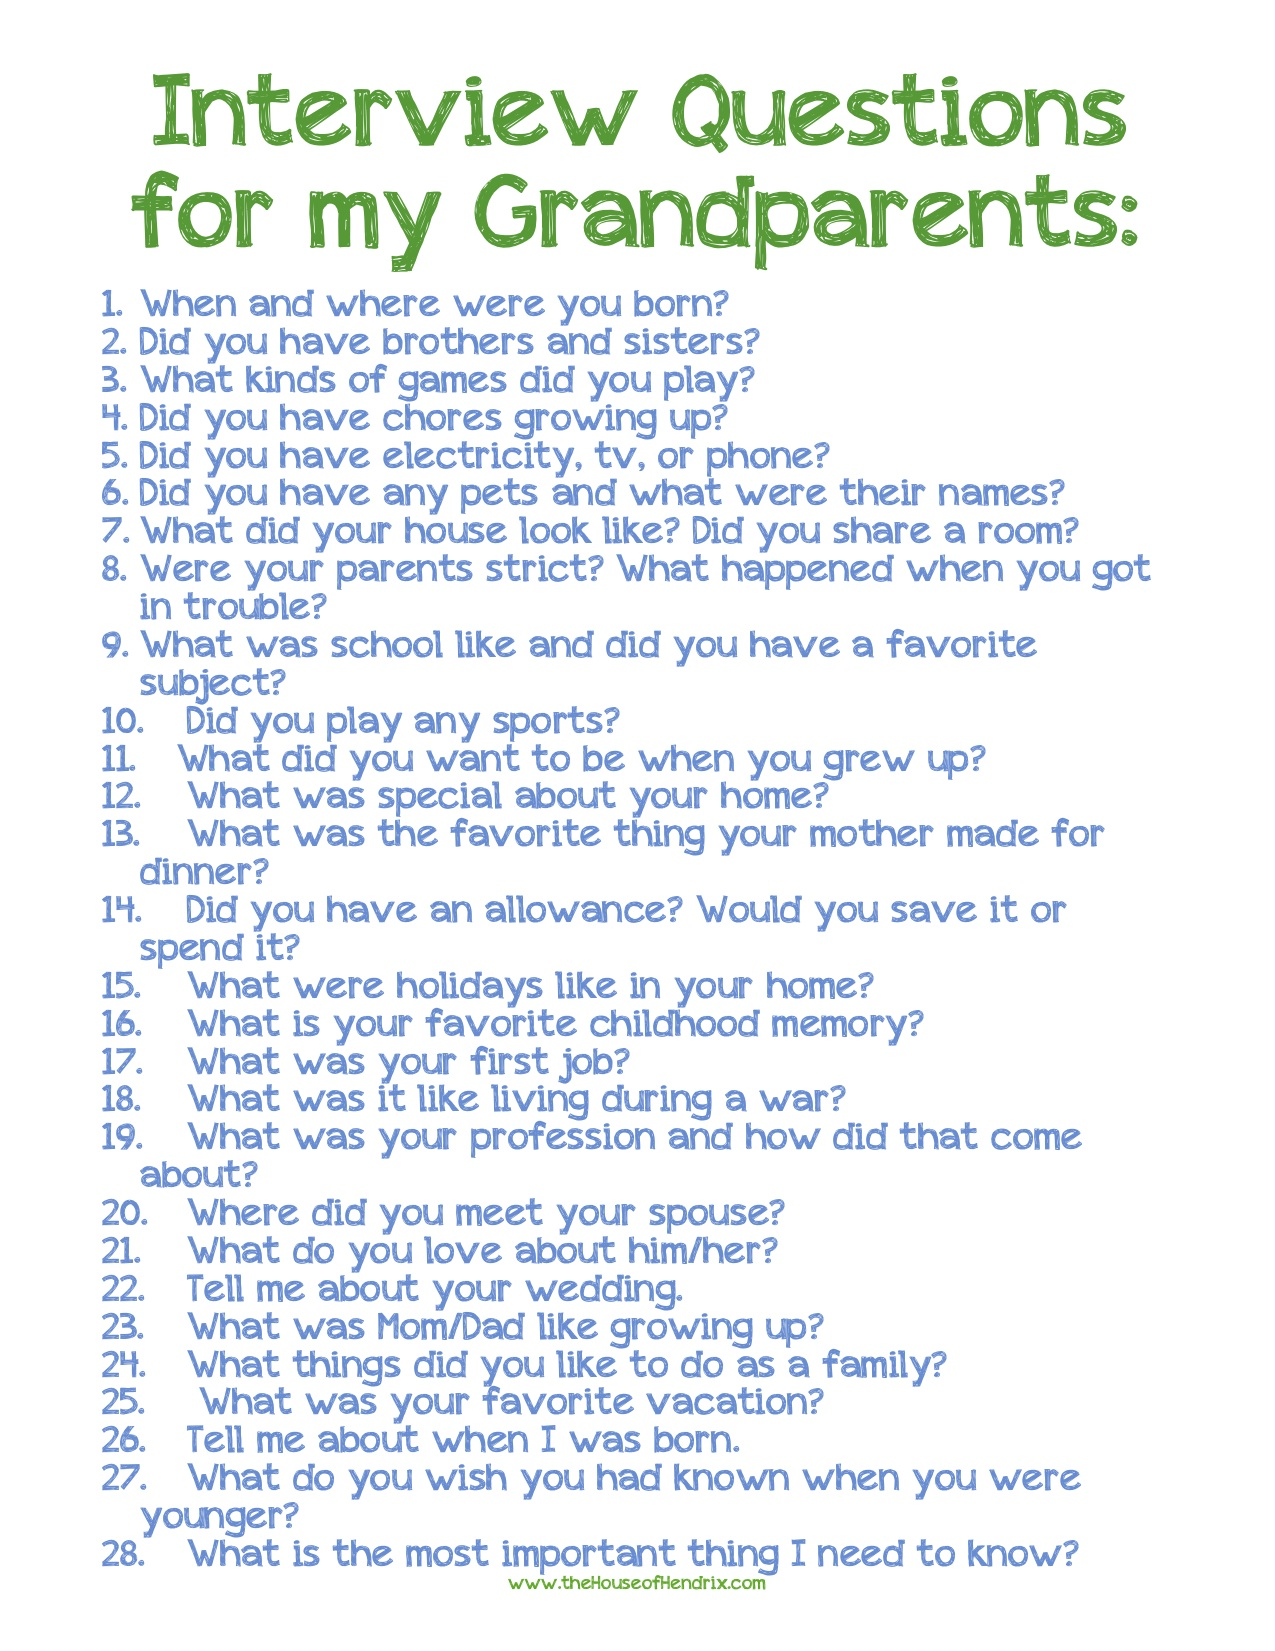 Grandparent Interview Questions